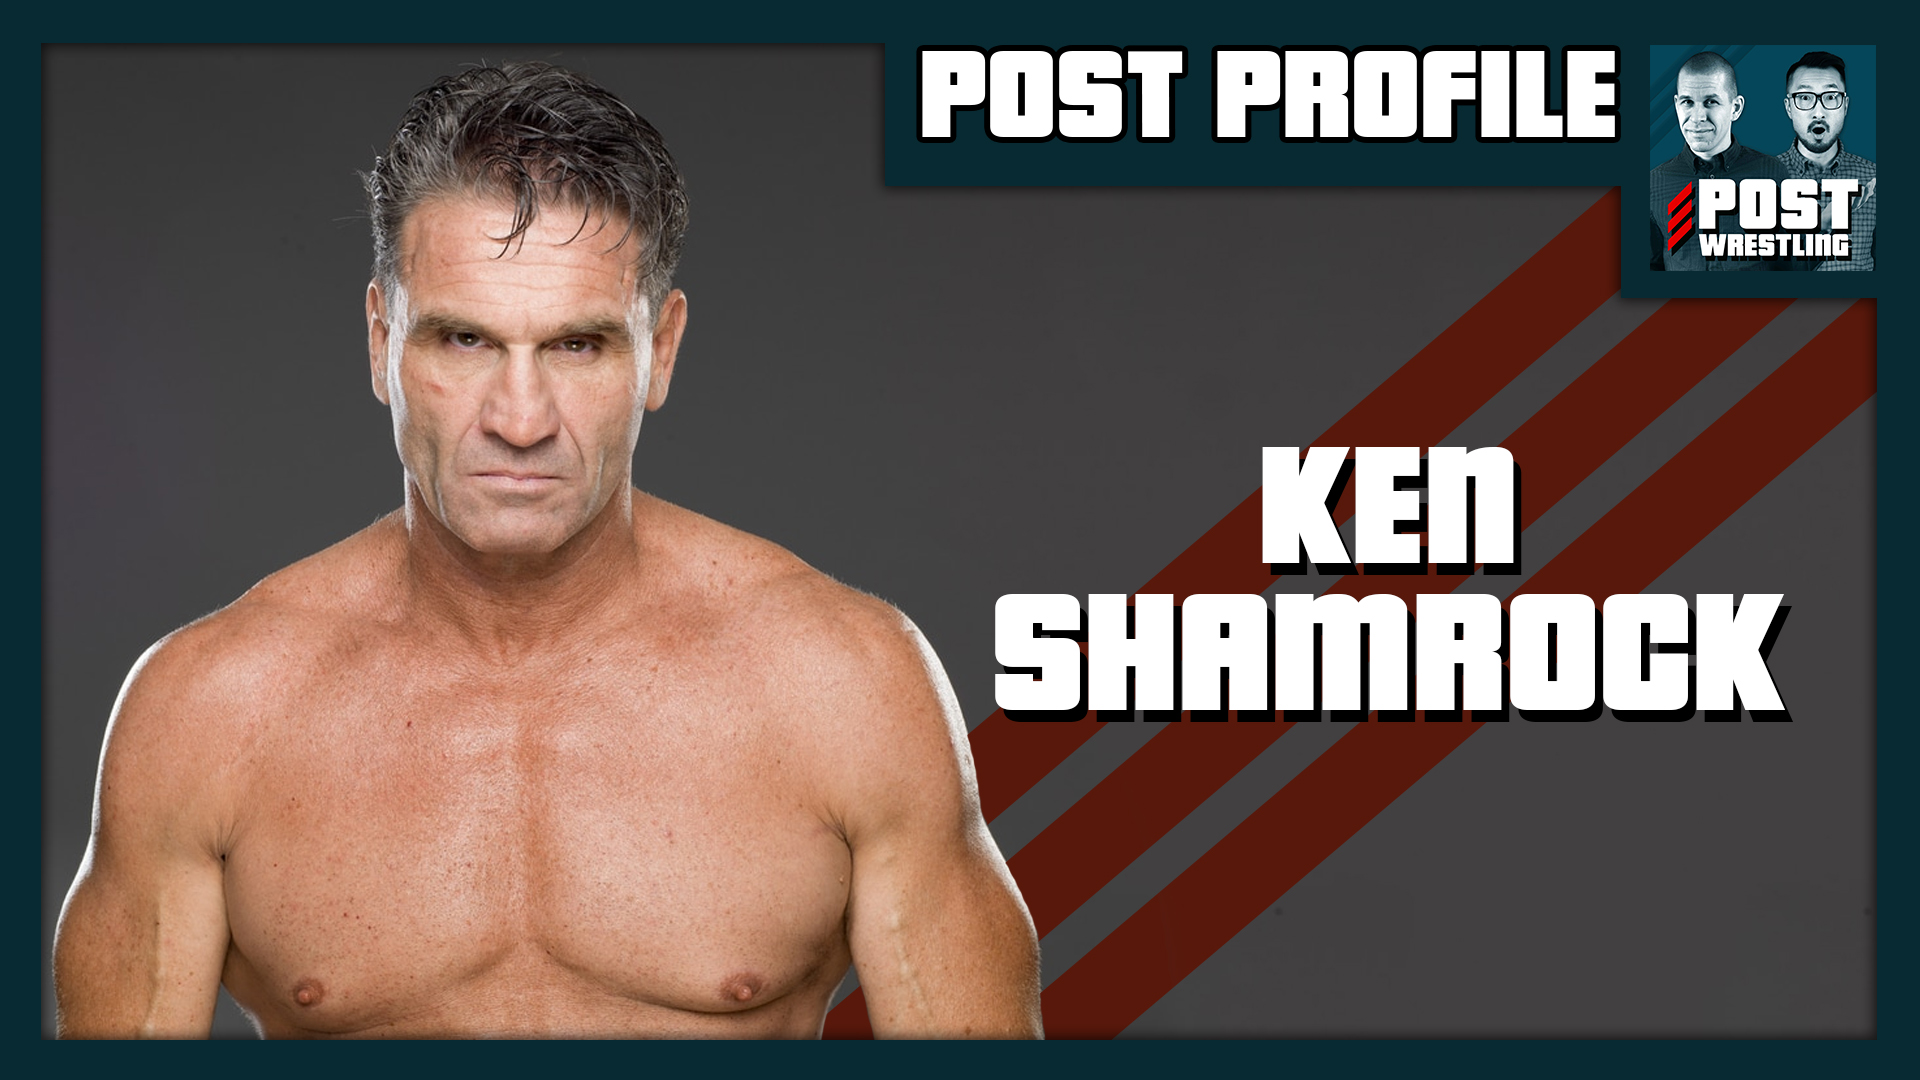 THE POST PROFILE: Ken Shamrock